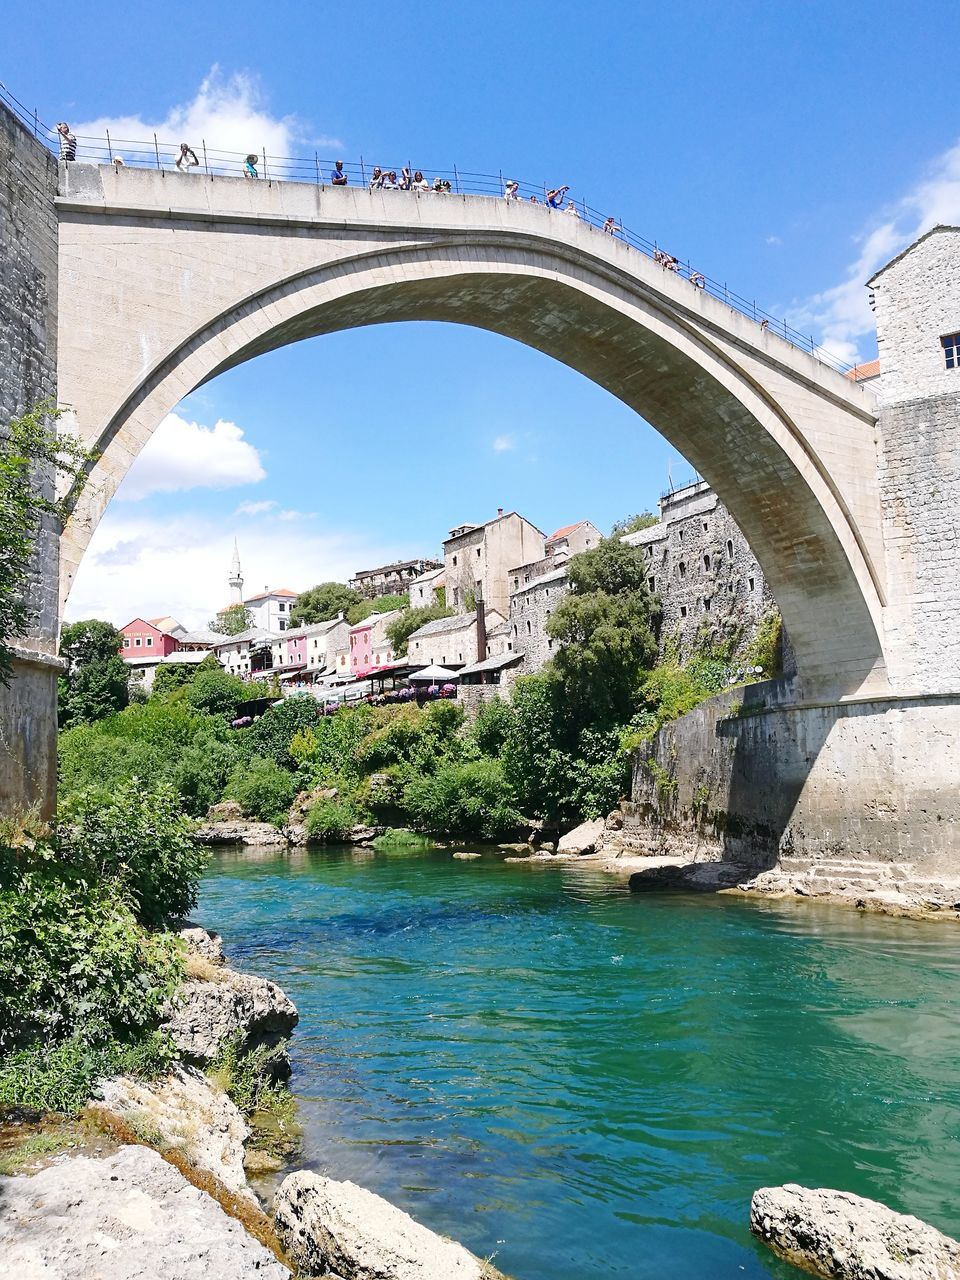 architecture, arch, bridge - man made structure, built structure, river, connection, water, sky, bridge, day, outdoors, no people, tree, nature